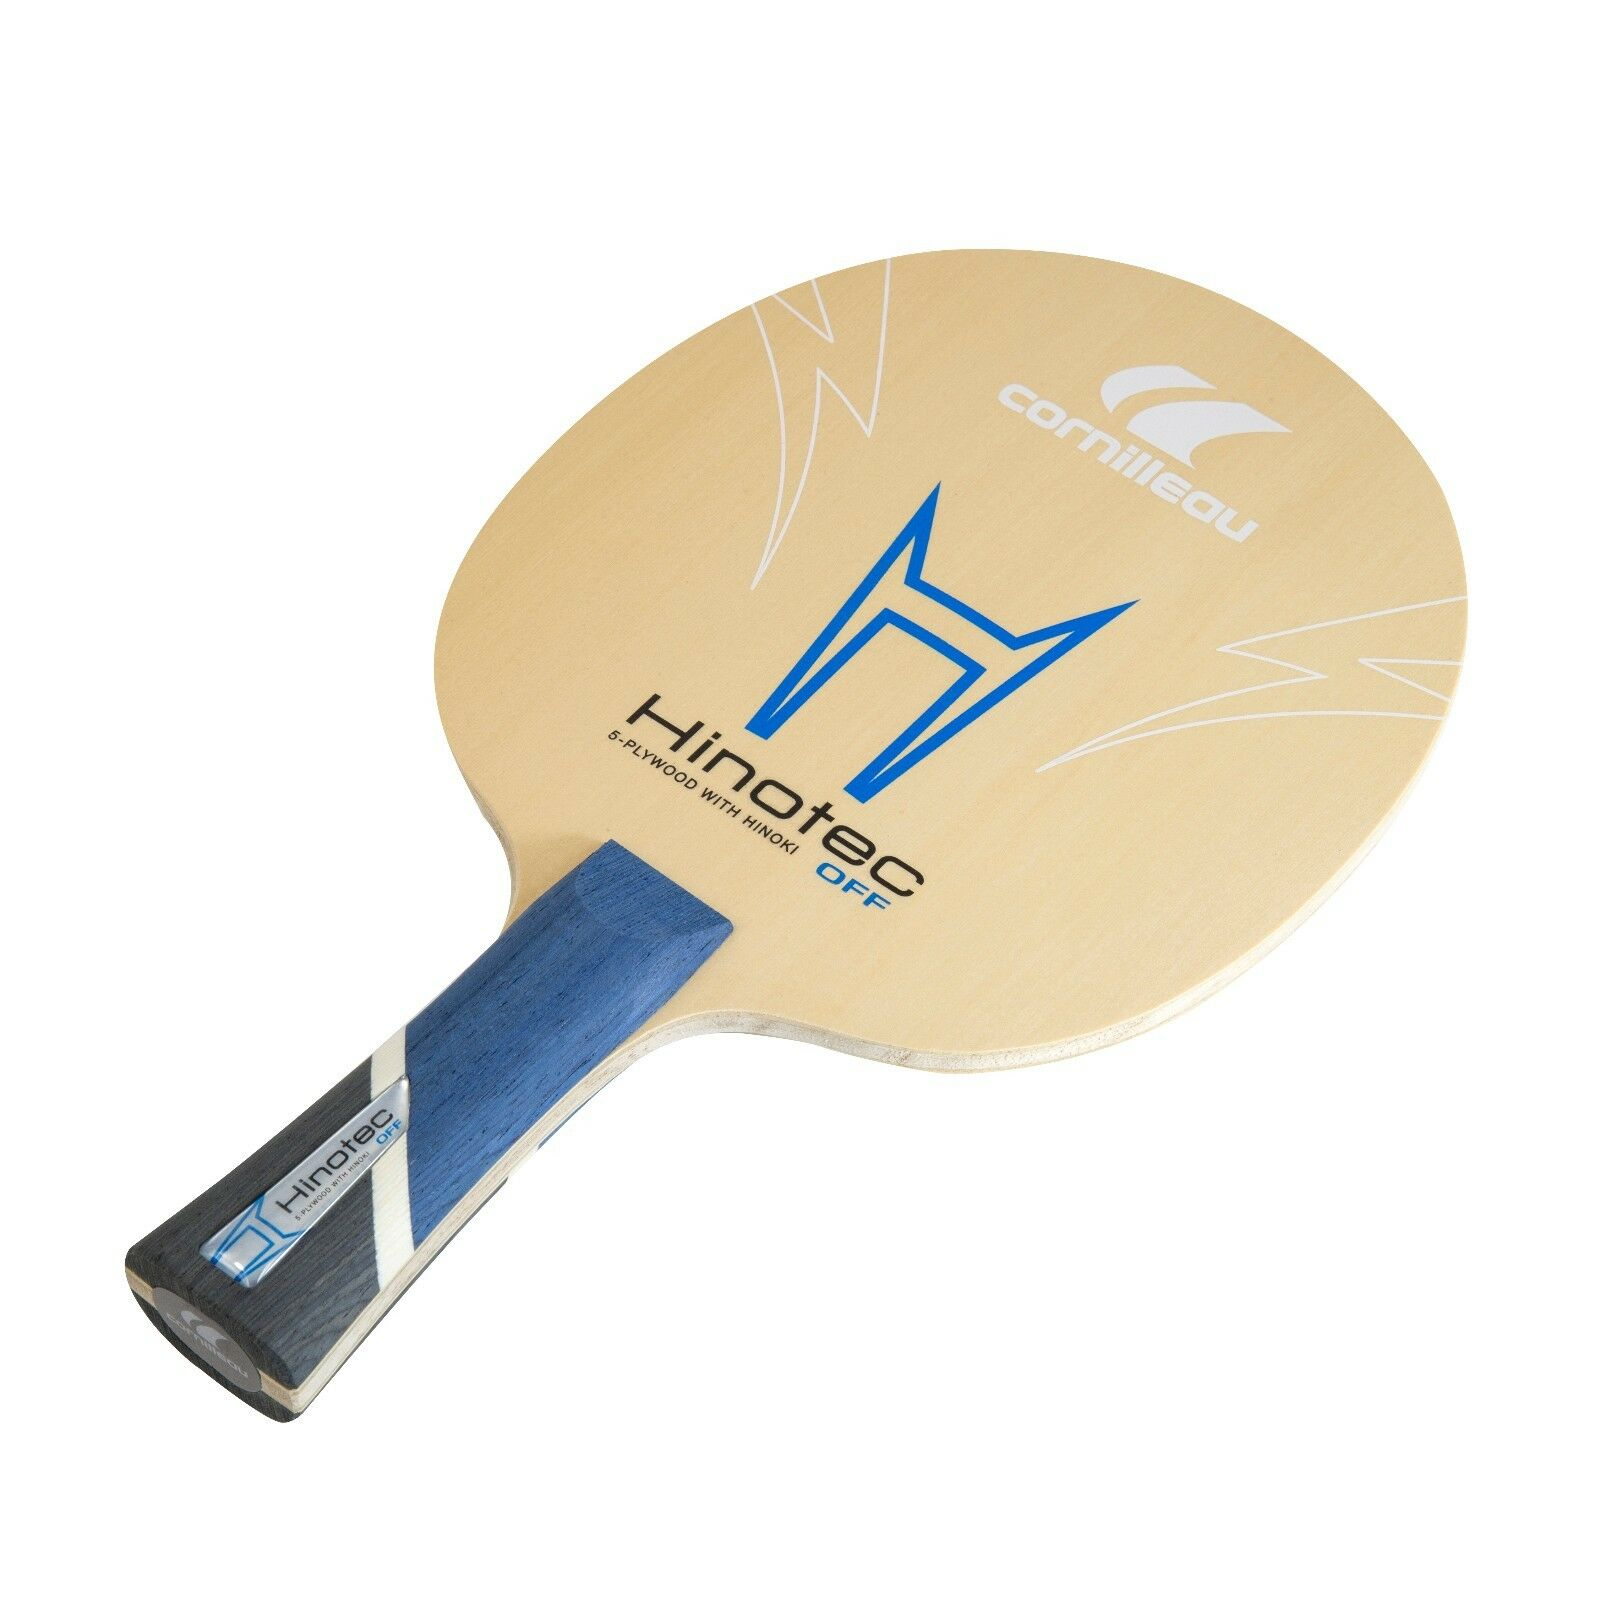 Cornilleau Hinotec Off Table Tennis Blade   Paddle with Flared Handle